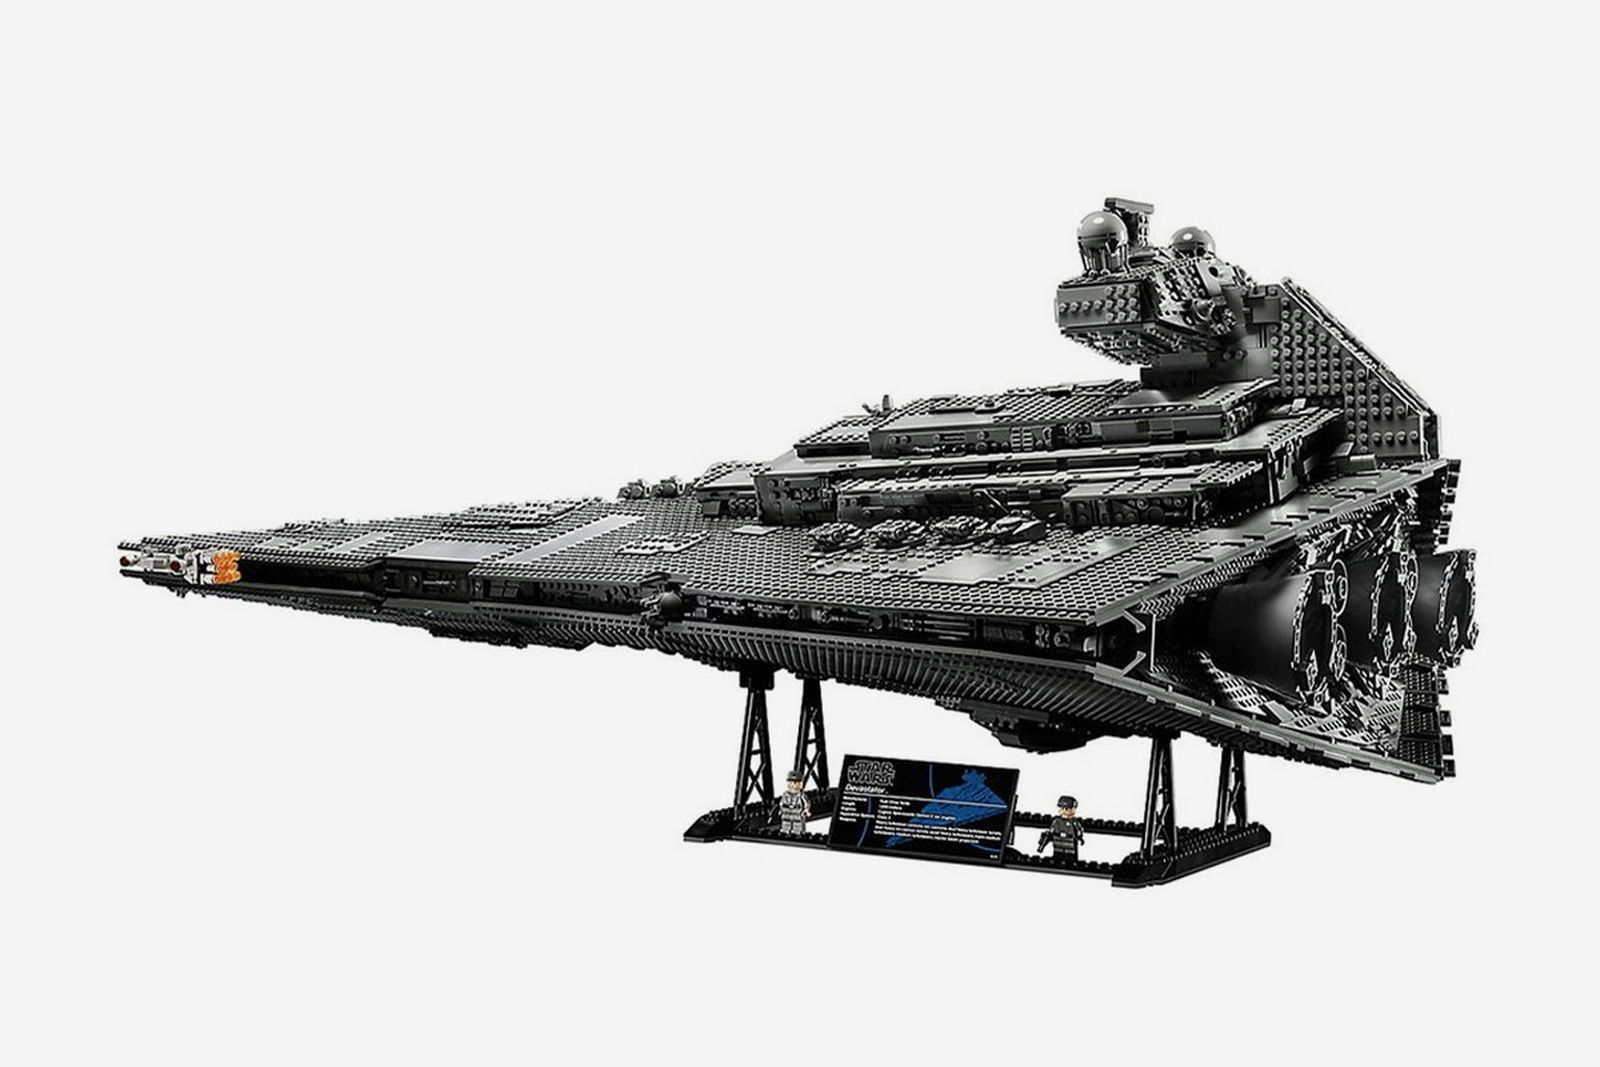 lego star wars imperial star destroyer set